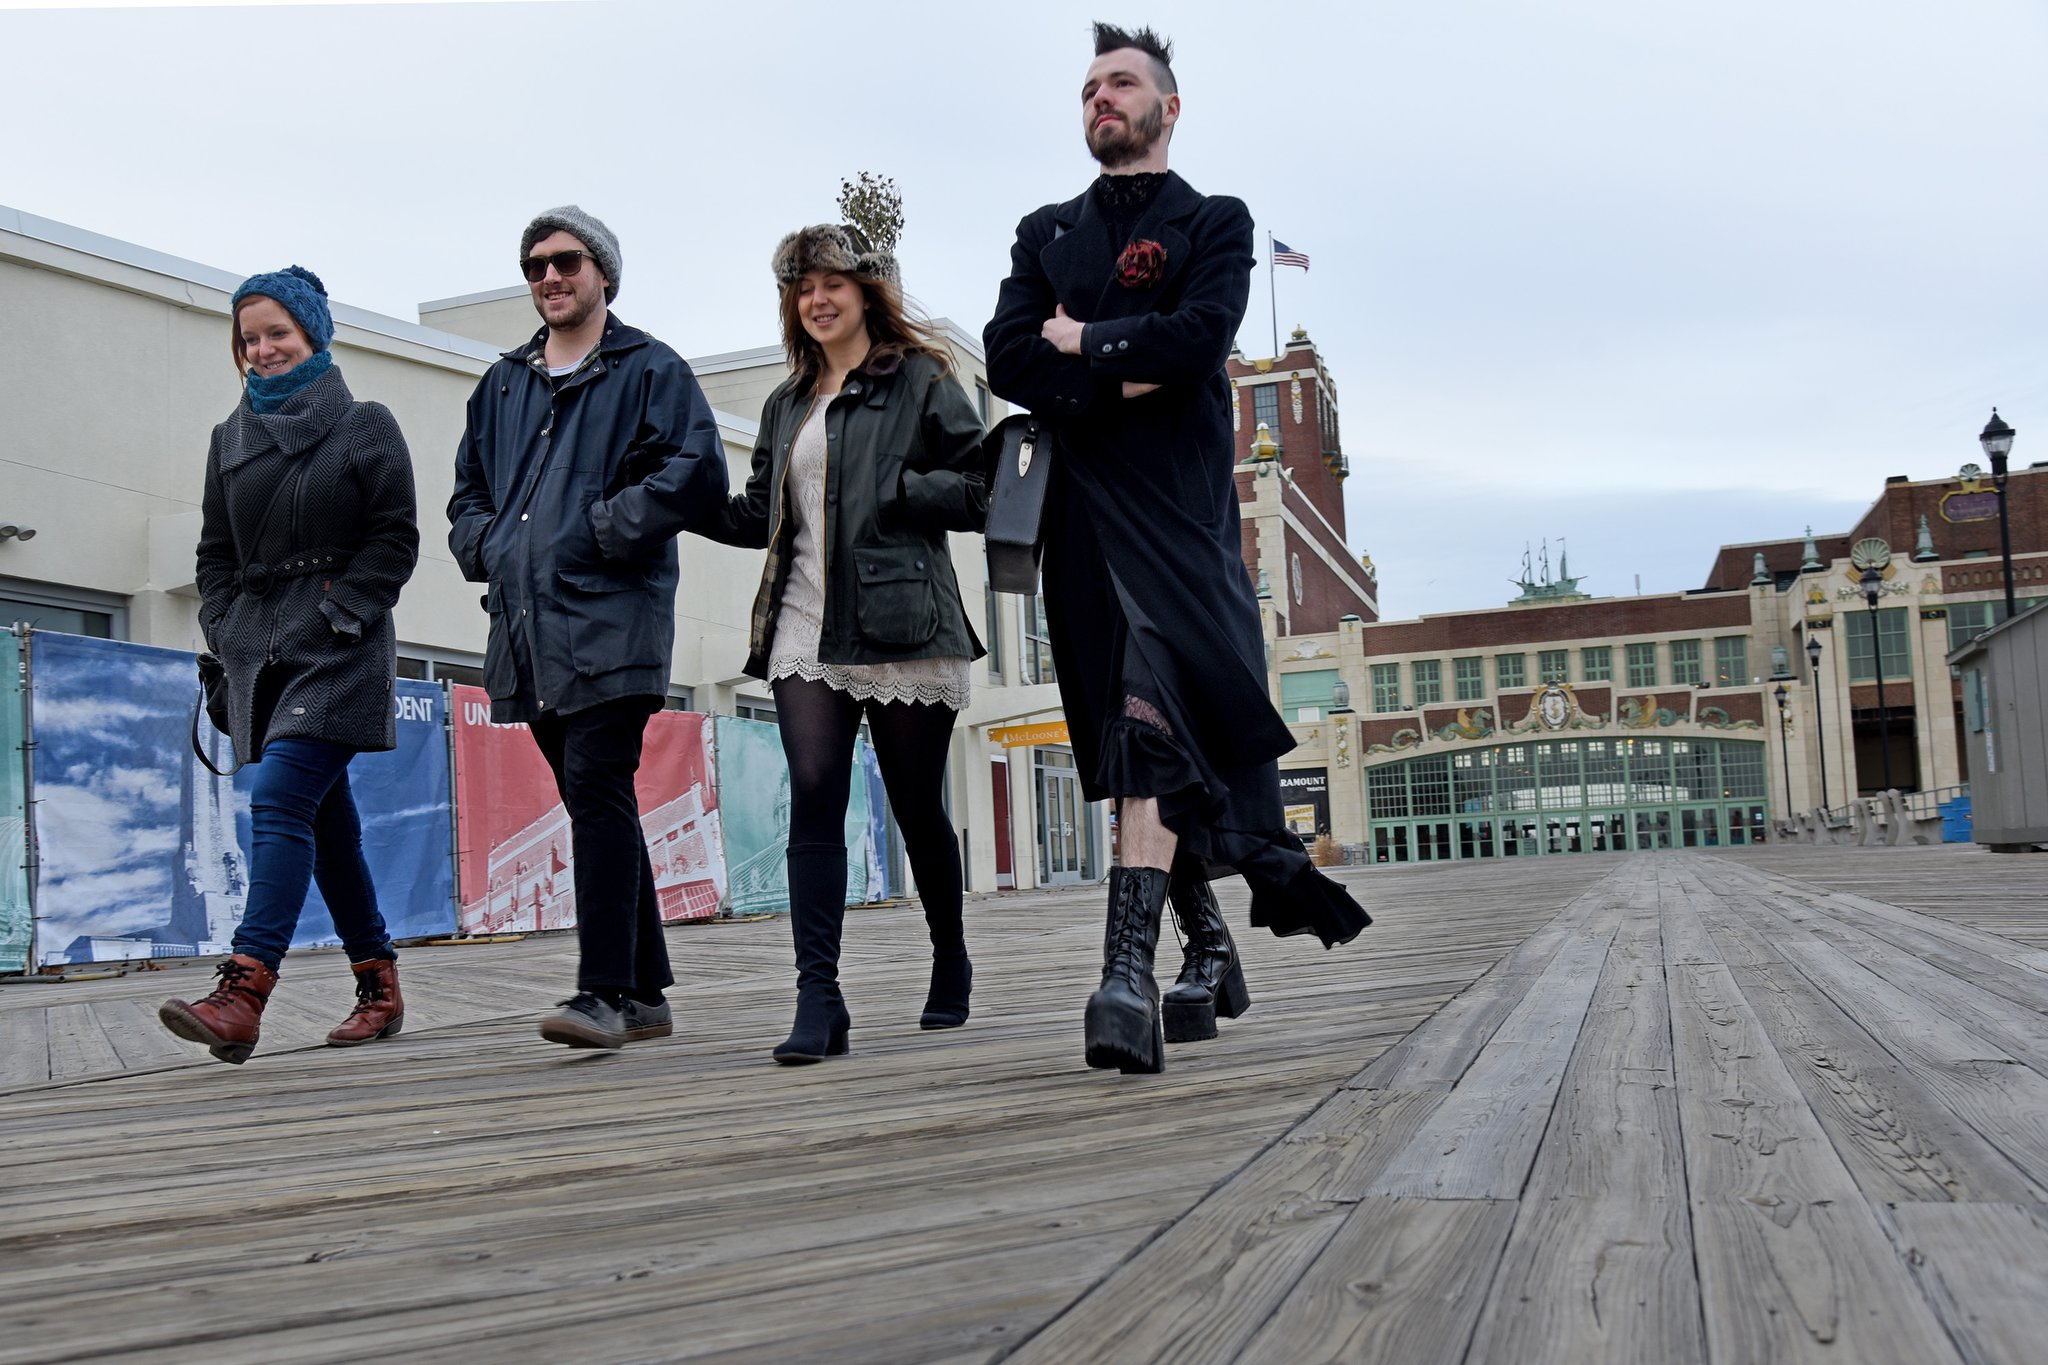 Into music, friend visit Asbury Park (from left) Britta Potesil, from Cologne, Germany; Ian Gray, South Philadelphia; Jessie Lipskin, Ocean Grove; and David Ross Lawn, Ocean Grove. They are walking along the Boardwalk with Convention Hall and the Paramount Theatre in background.